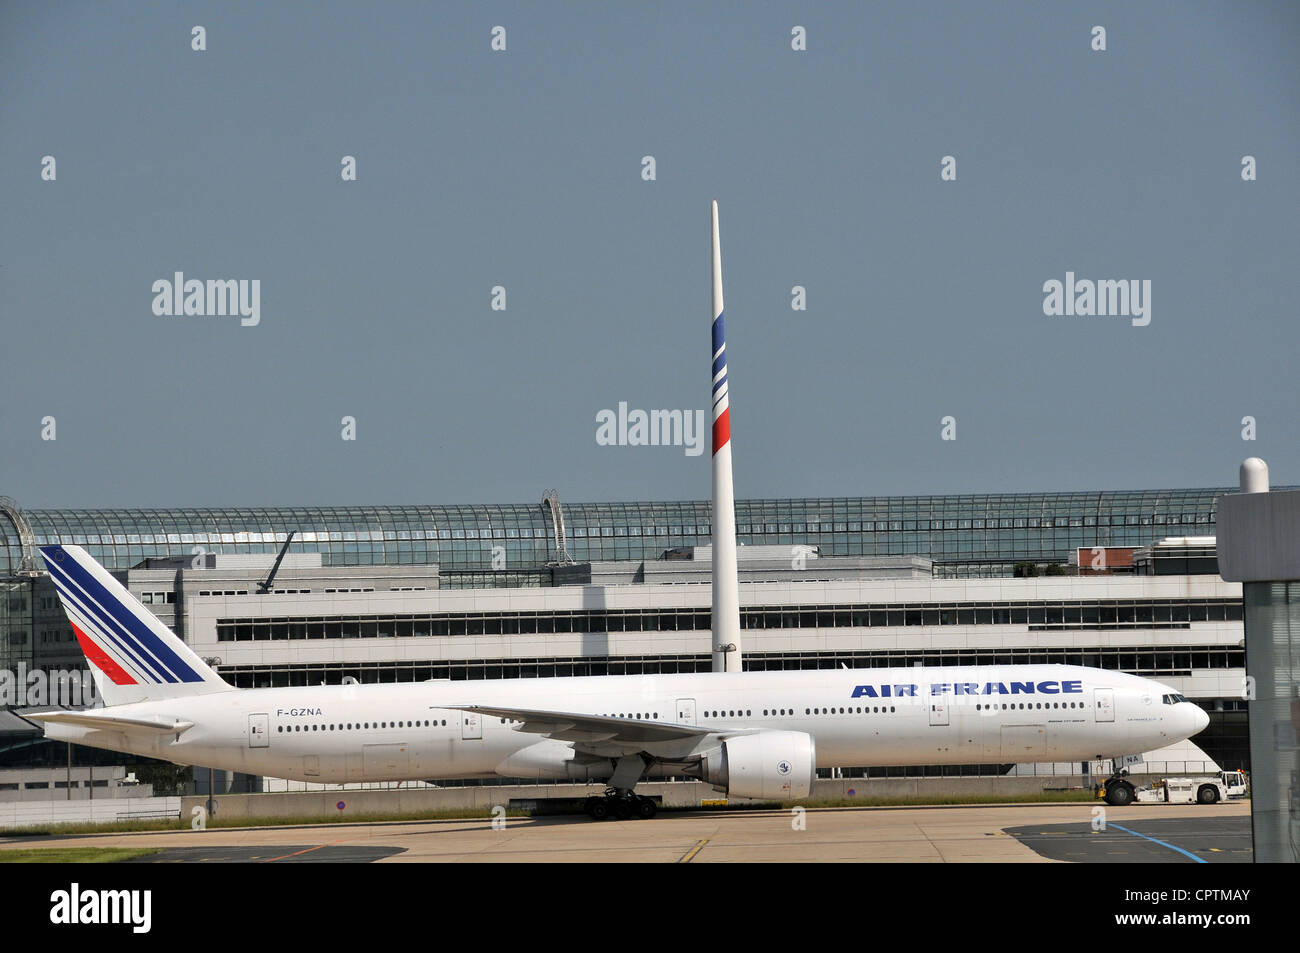 Le Meilleur Boeing 777 Before The Headquarters Building Of Air France Ce Mois Ci